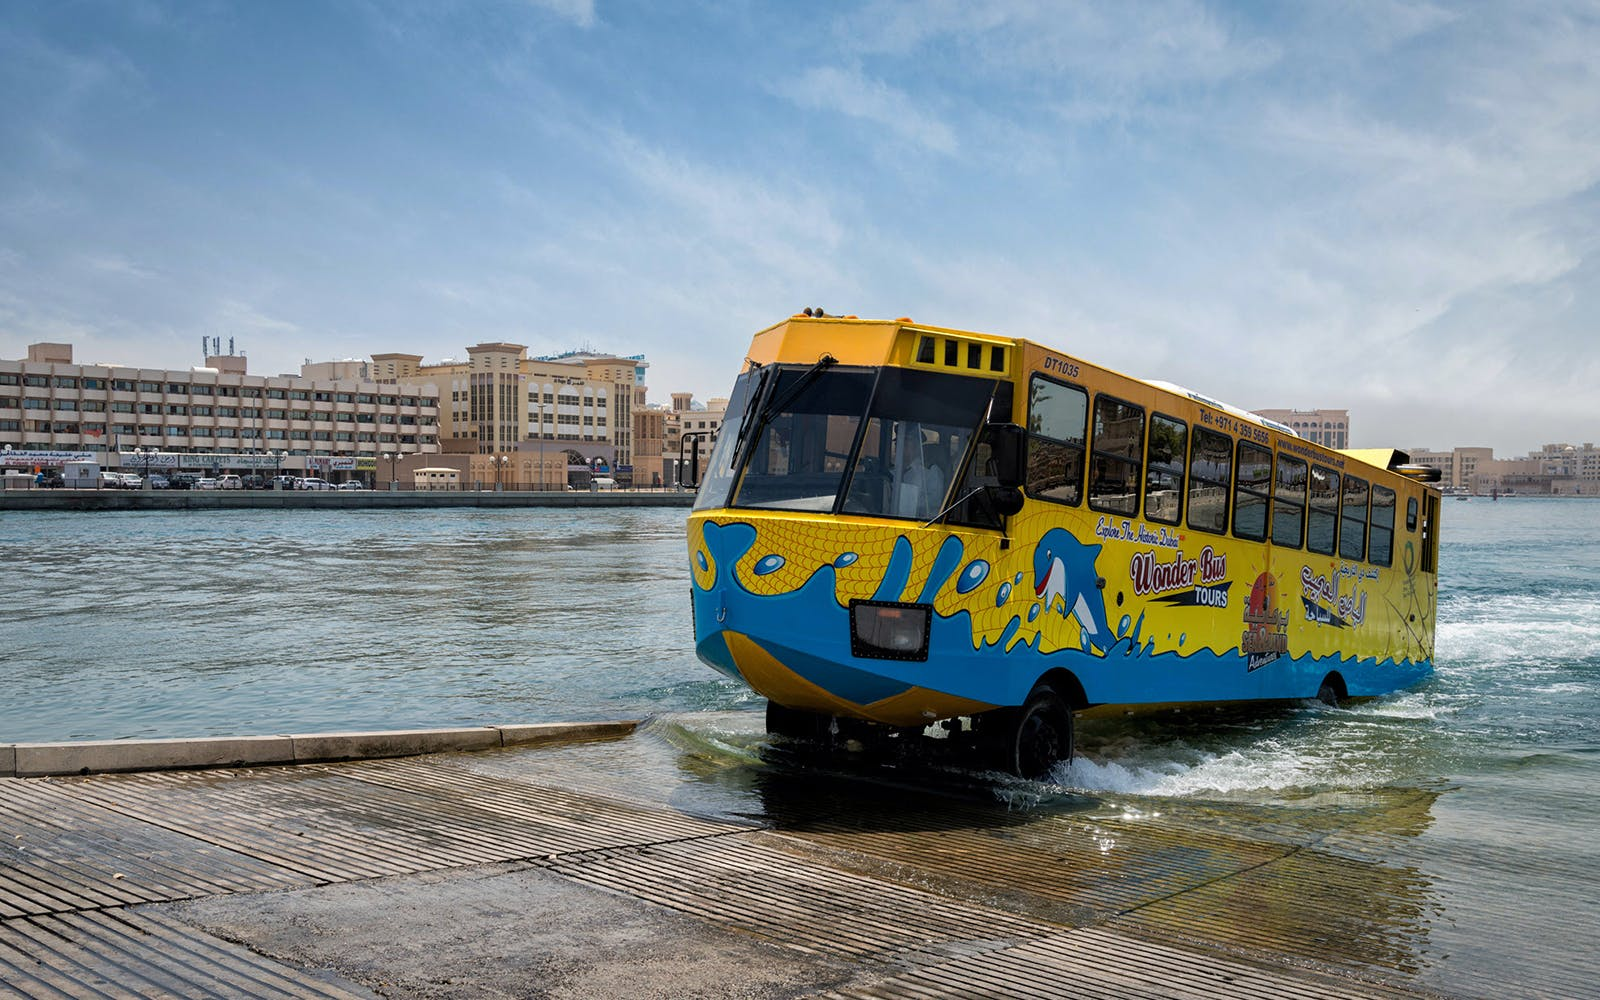 Dubai Wonderbus Tour - Sea & Land Adventure